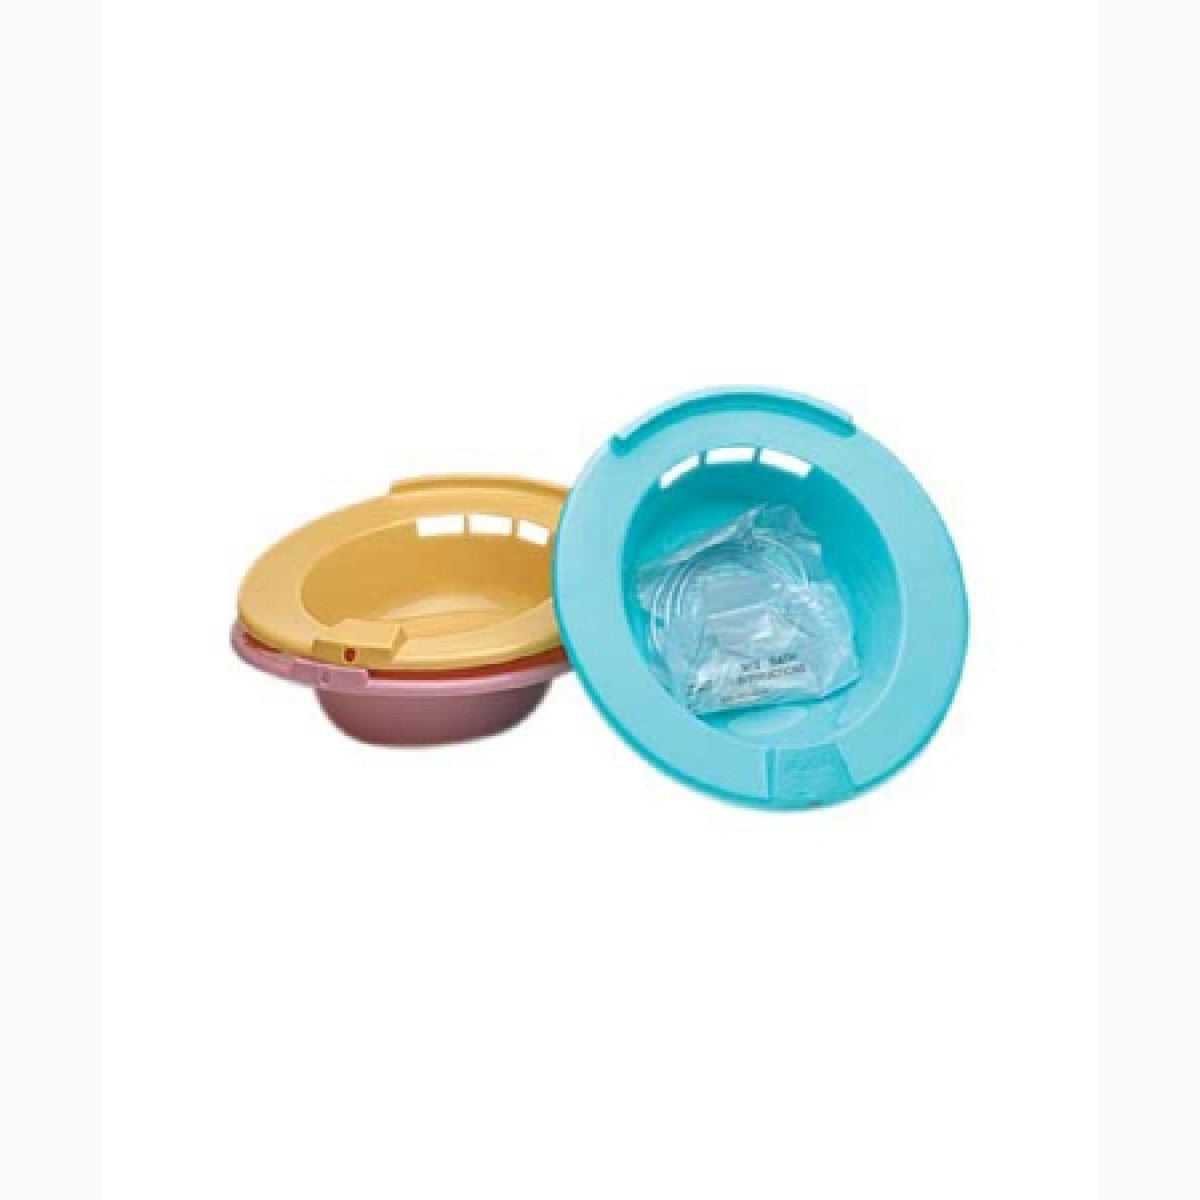 Monies Yoni Steam and Basin Set